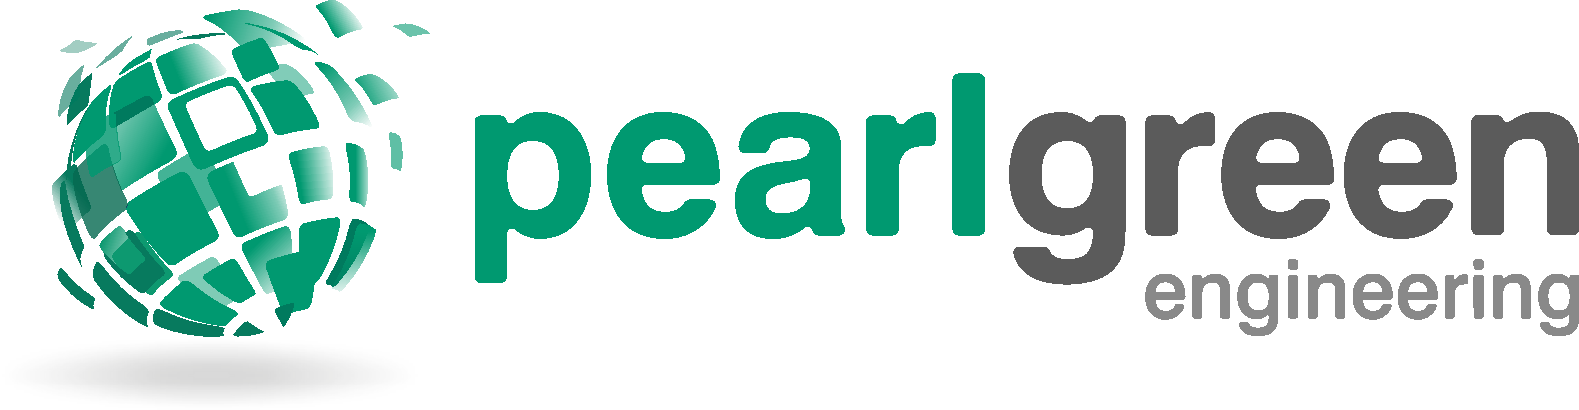 Pearlgreen Engineering Logo